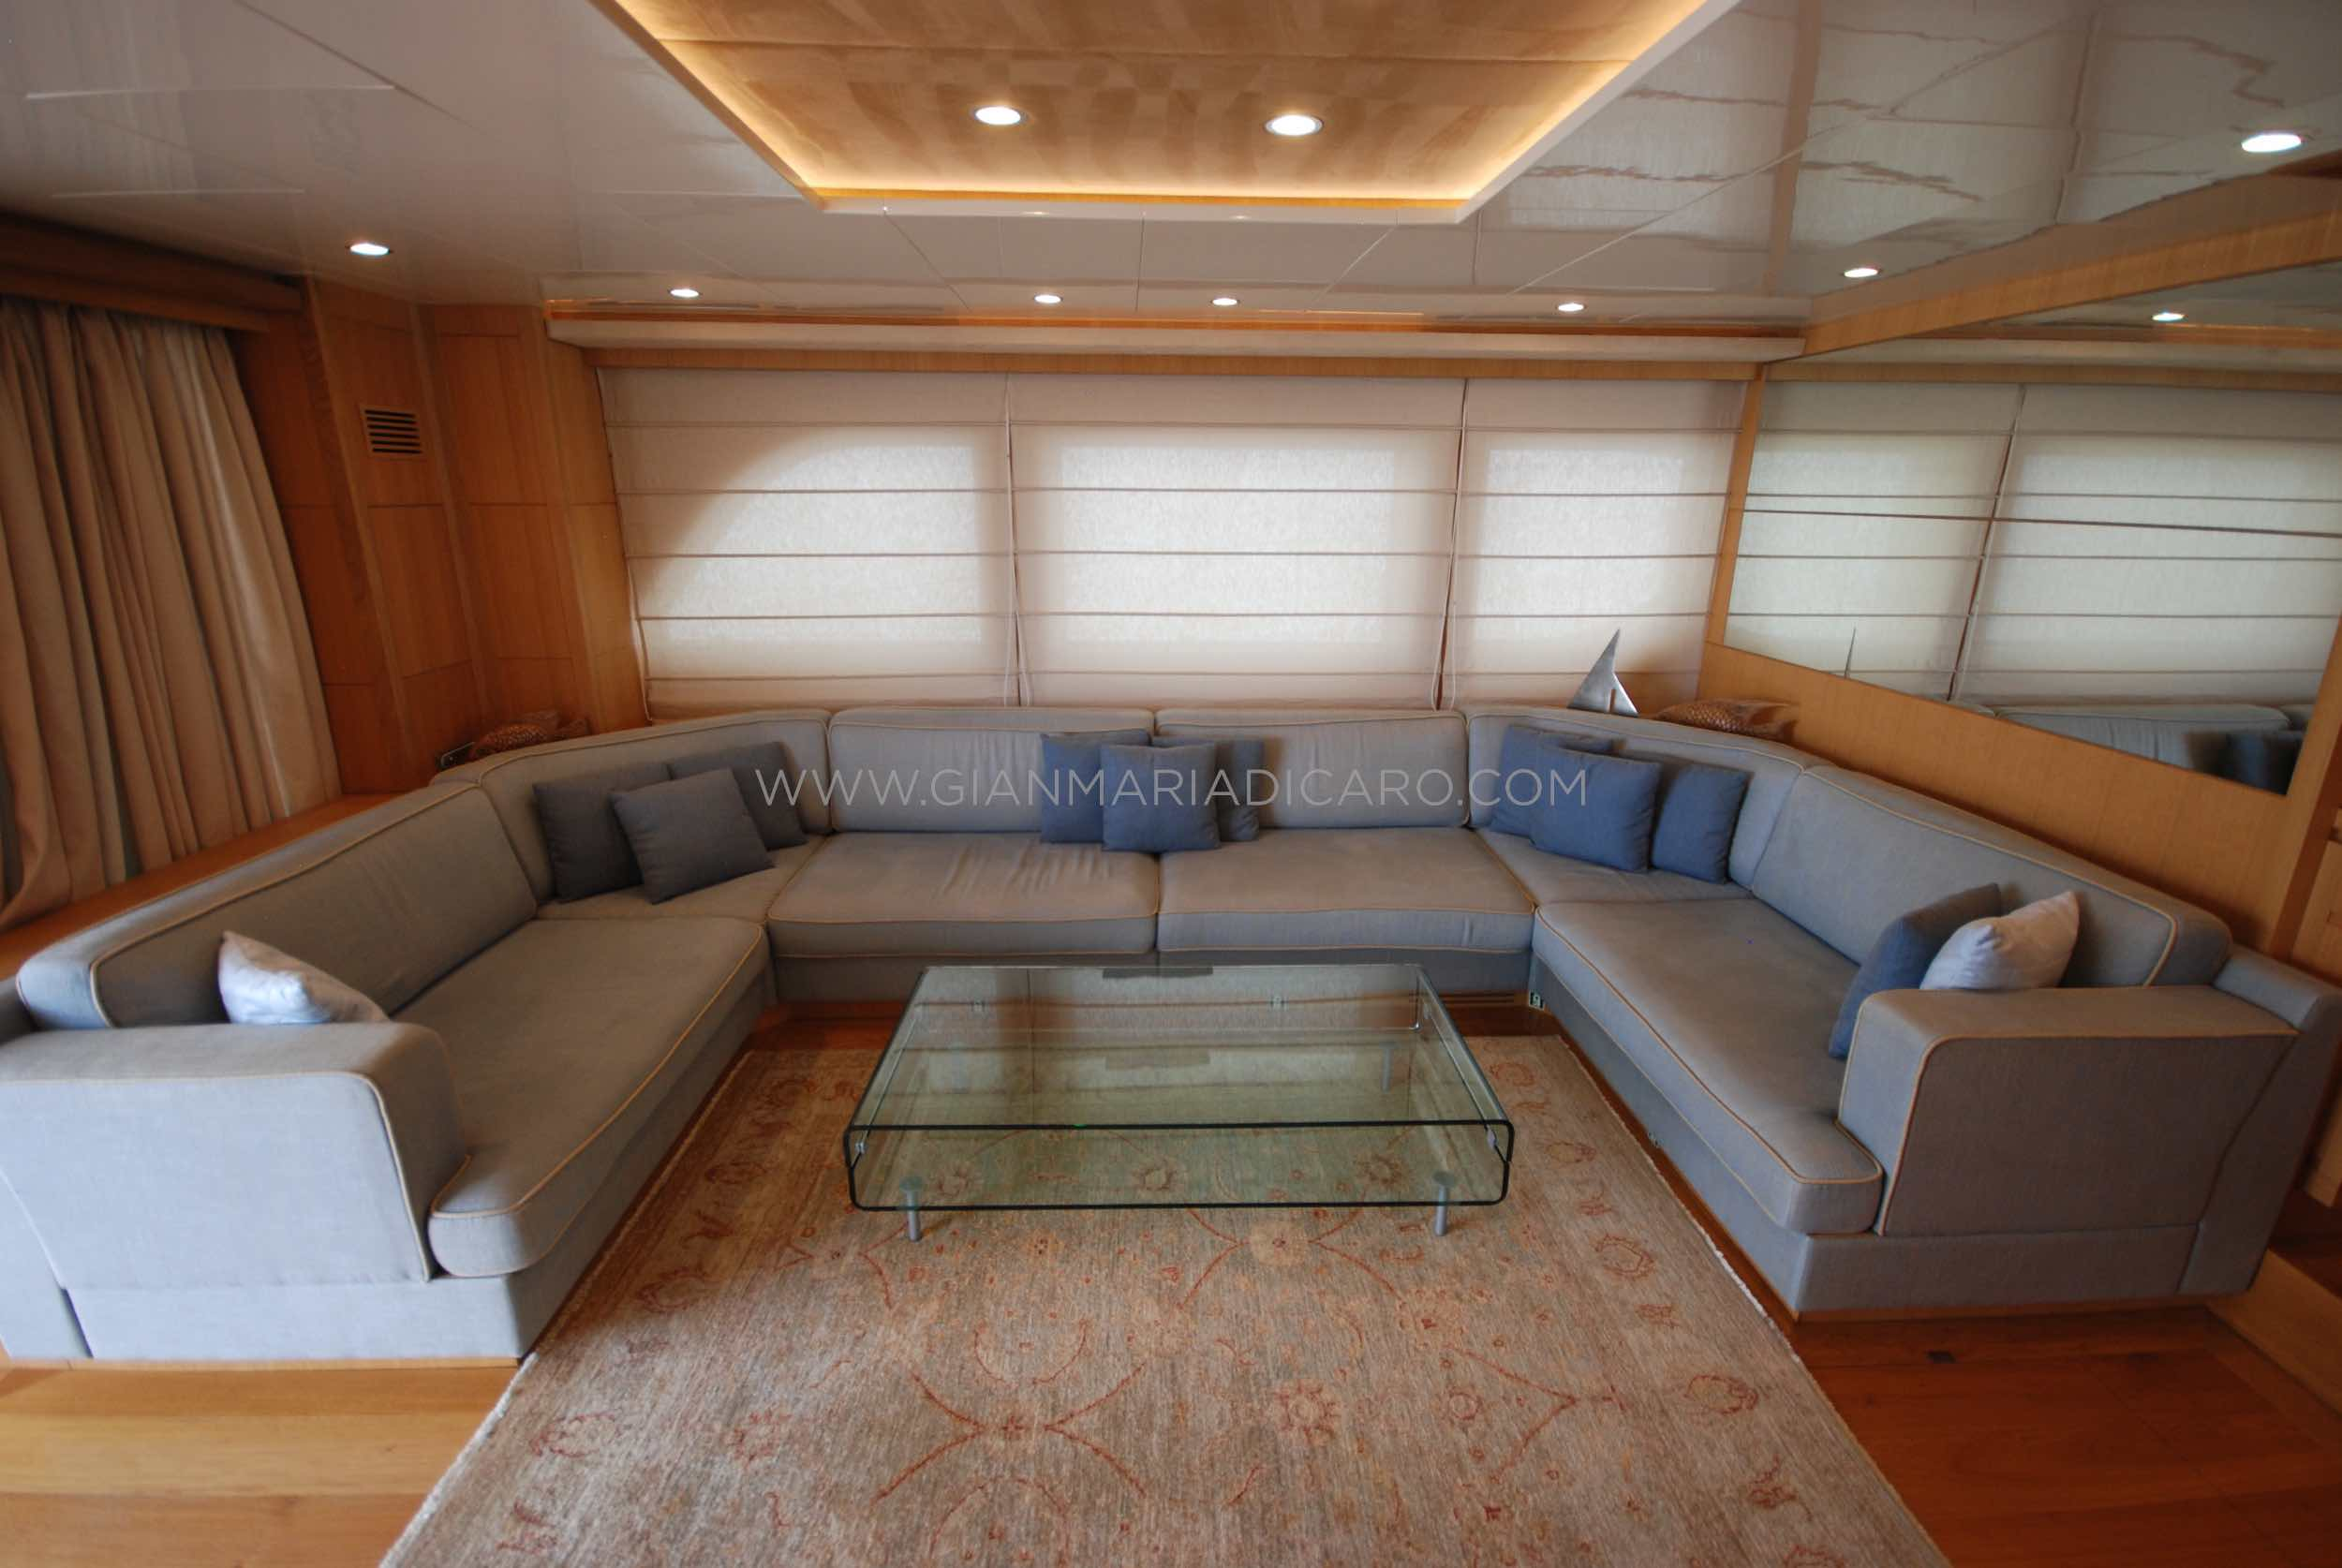 emys-yacht-22-unica-for-sale-117.jpg